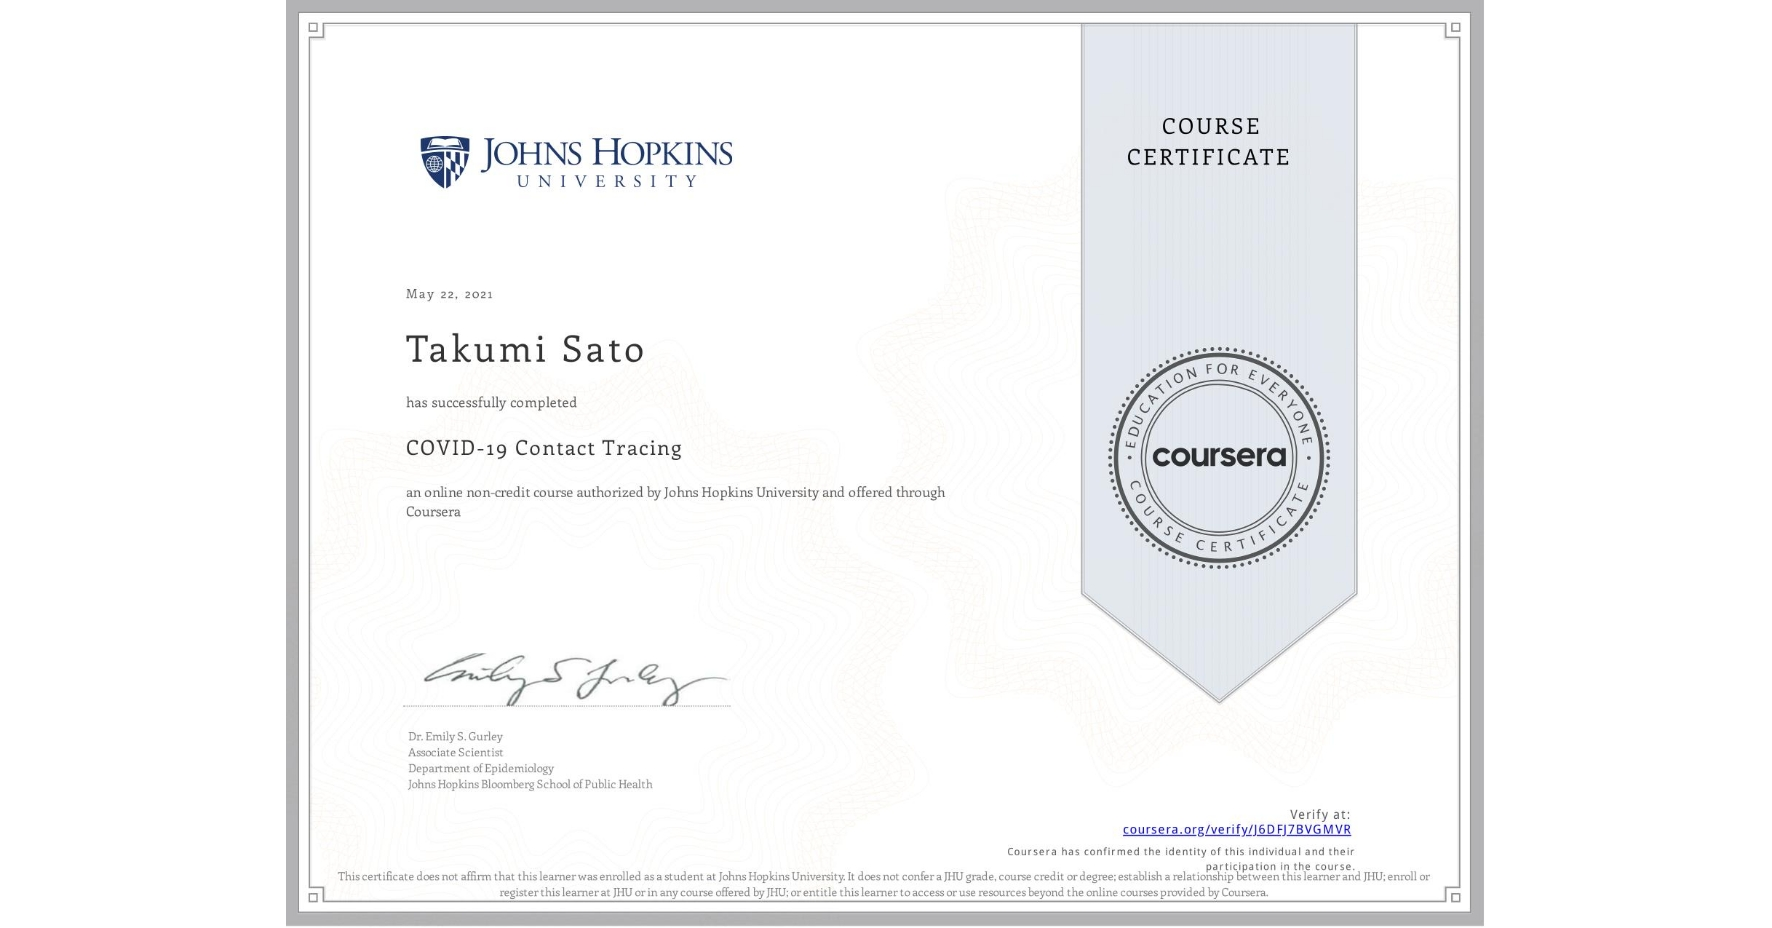 View certificate for Takumi Sato, COVID-19 Contact Tracing, an online non-credit course authorized by Johns Hopkins University and offered through Coursera